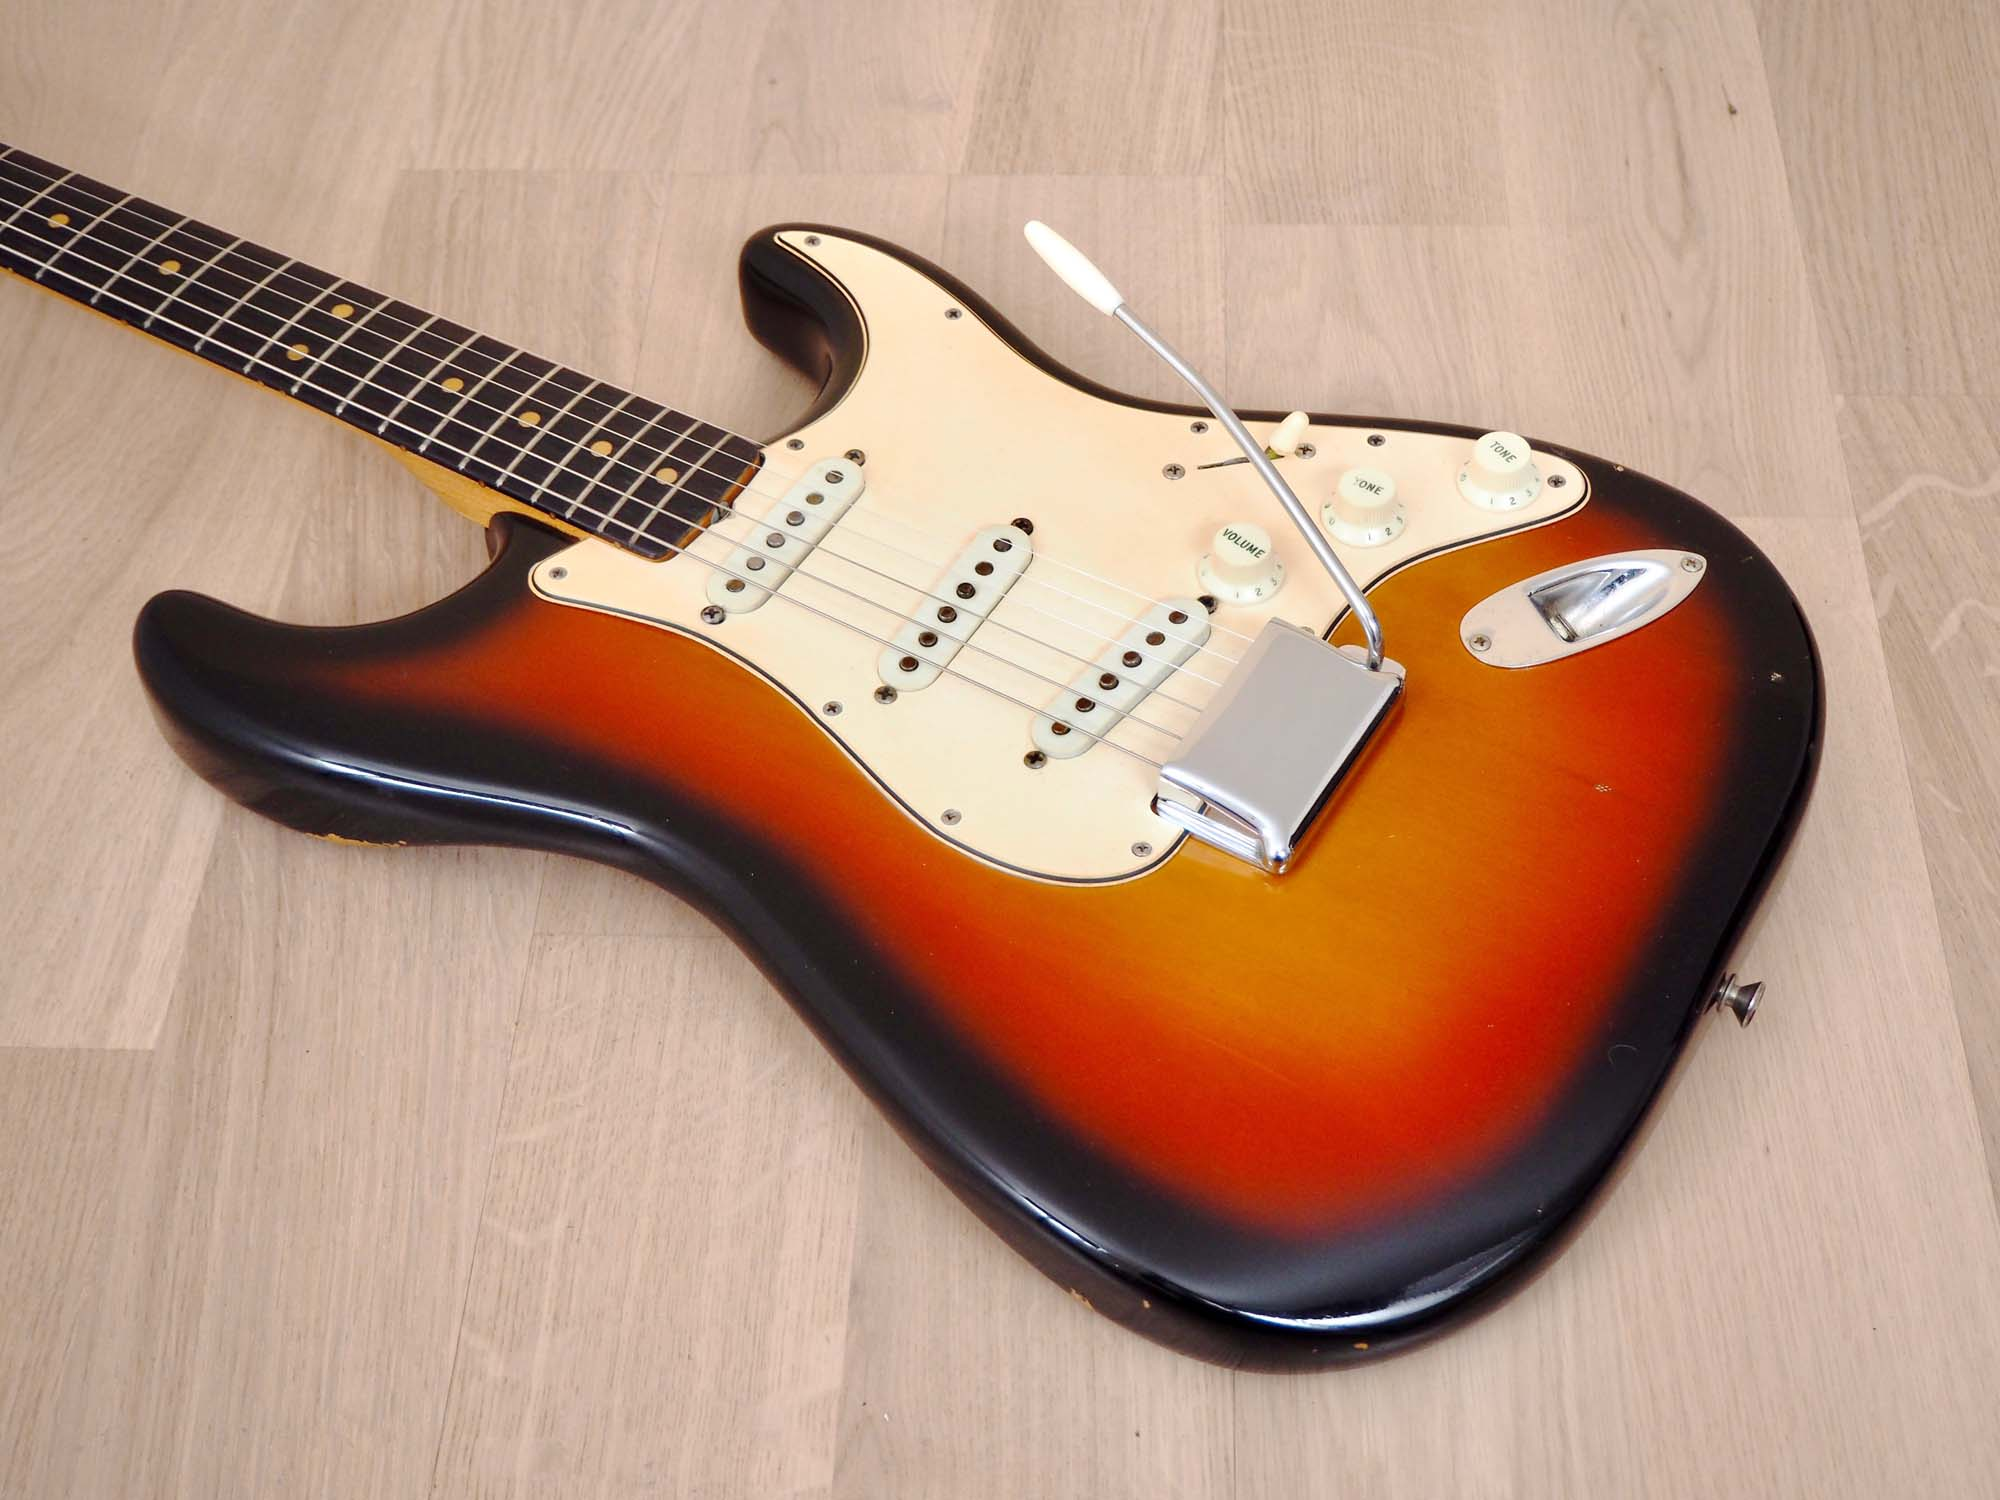 1965 Fender Stratocaster Vintage Electric Guitar Sunburst Collector-Grade w/ Case